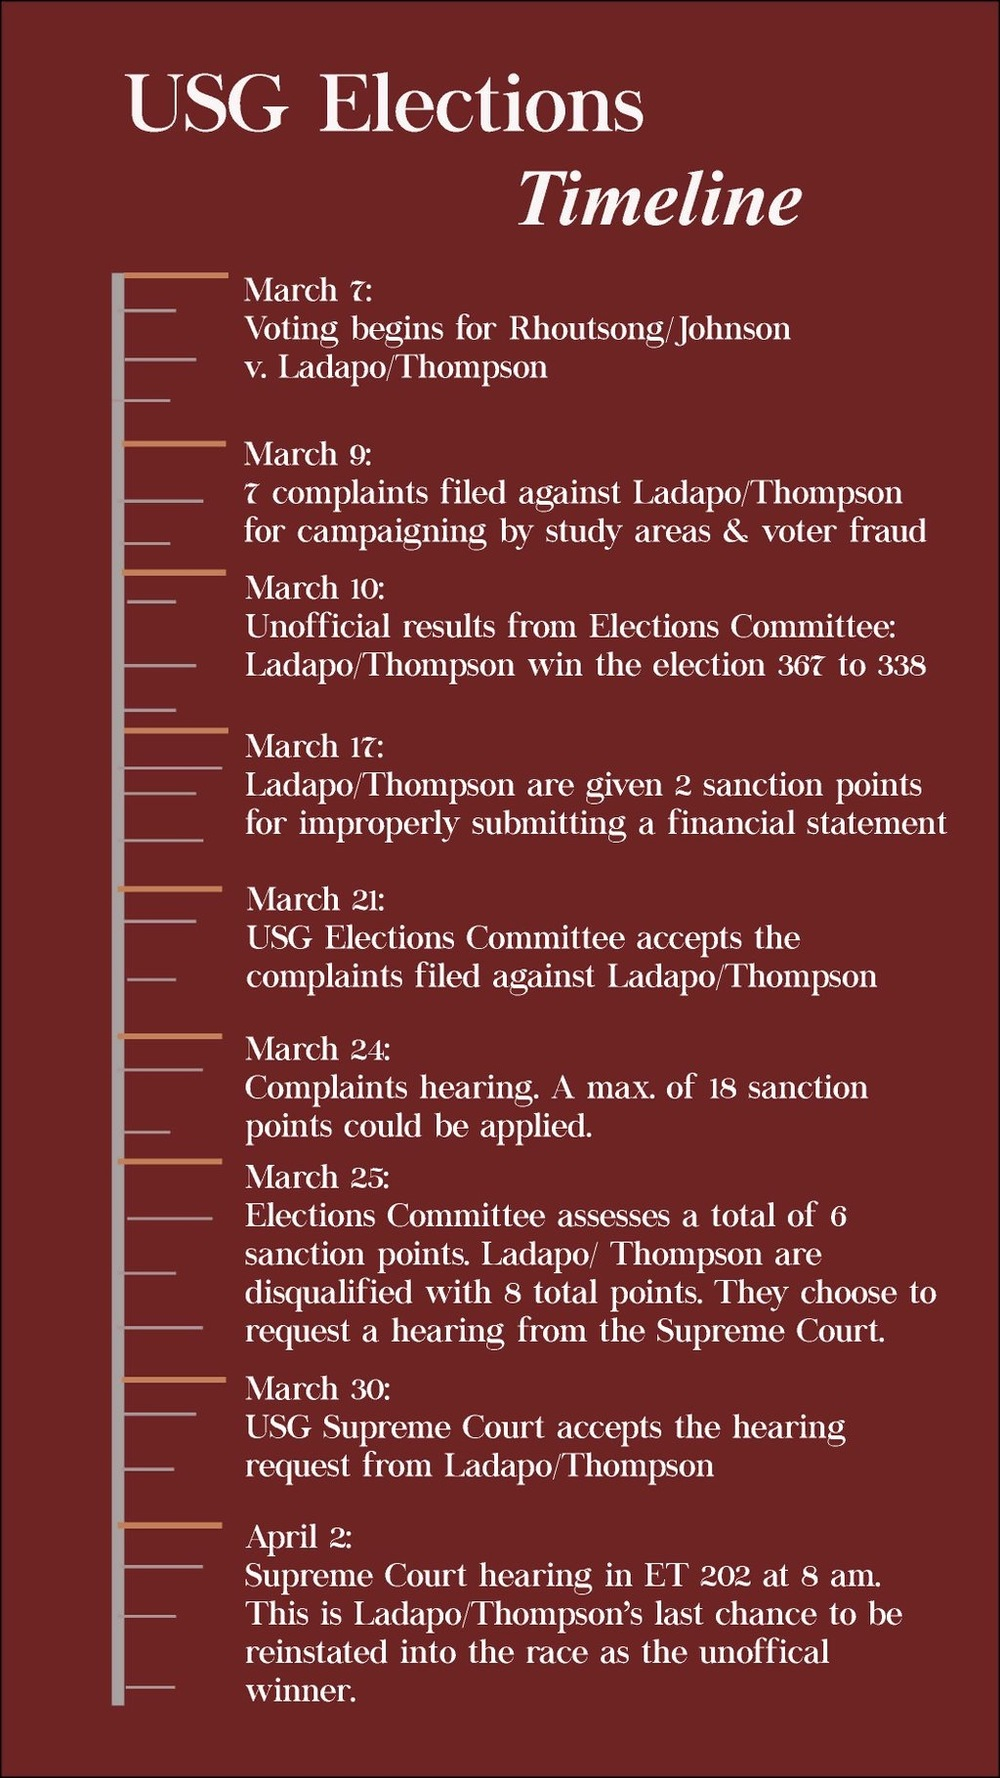 A timeline of the USG elections, courtesy of Cassandra Govert.